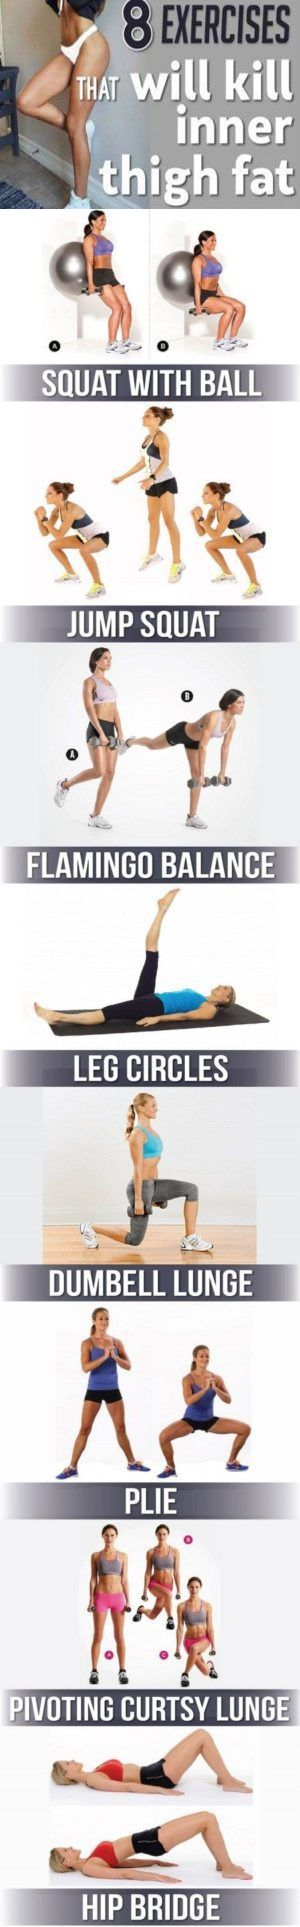 8 Exercises That Will Kill Inner Thigh Fat – Lifee Too